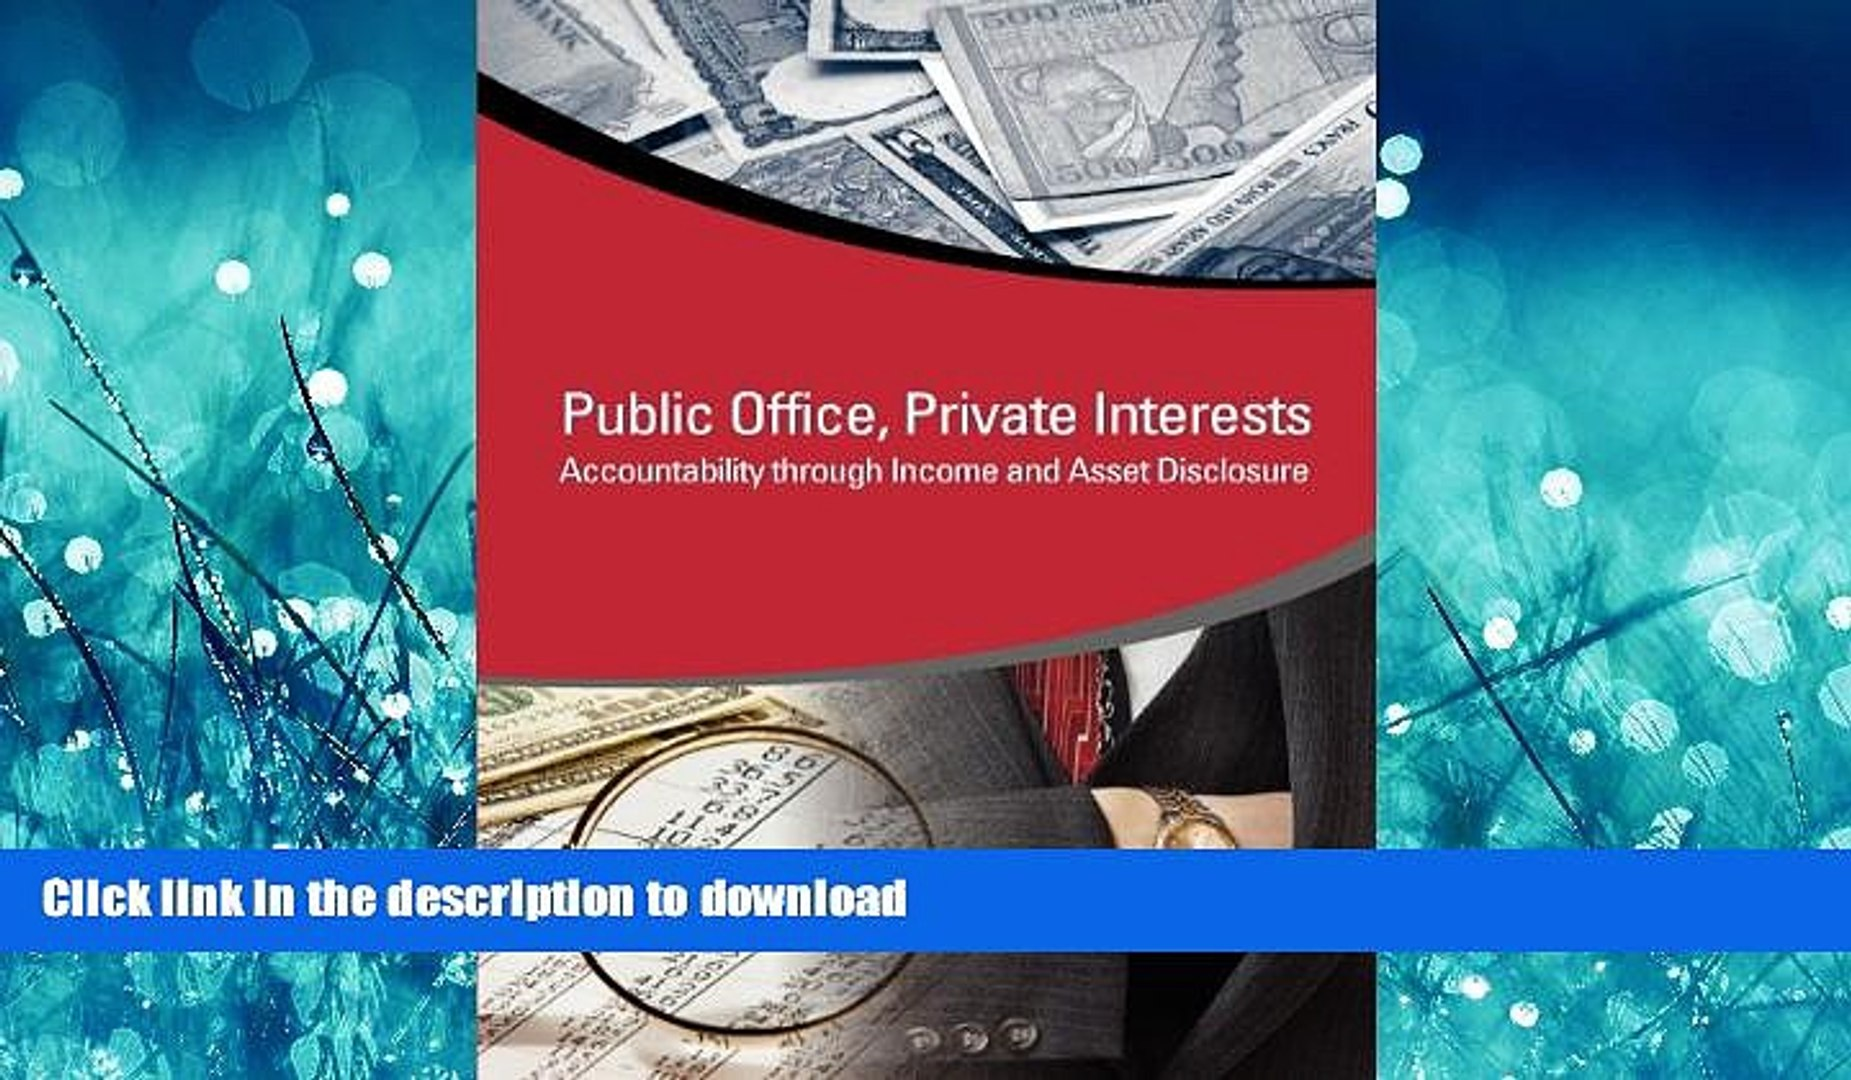 READ  Public Office, Private Interests: Accountability through Income and Asset Disclosure (StAR